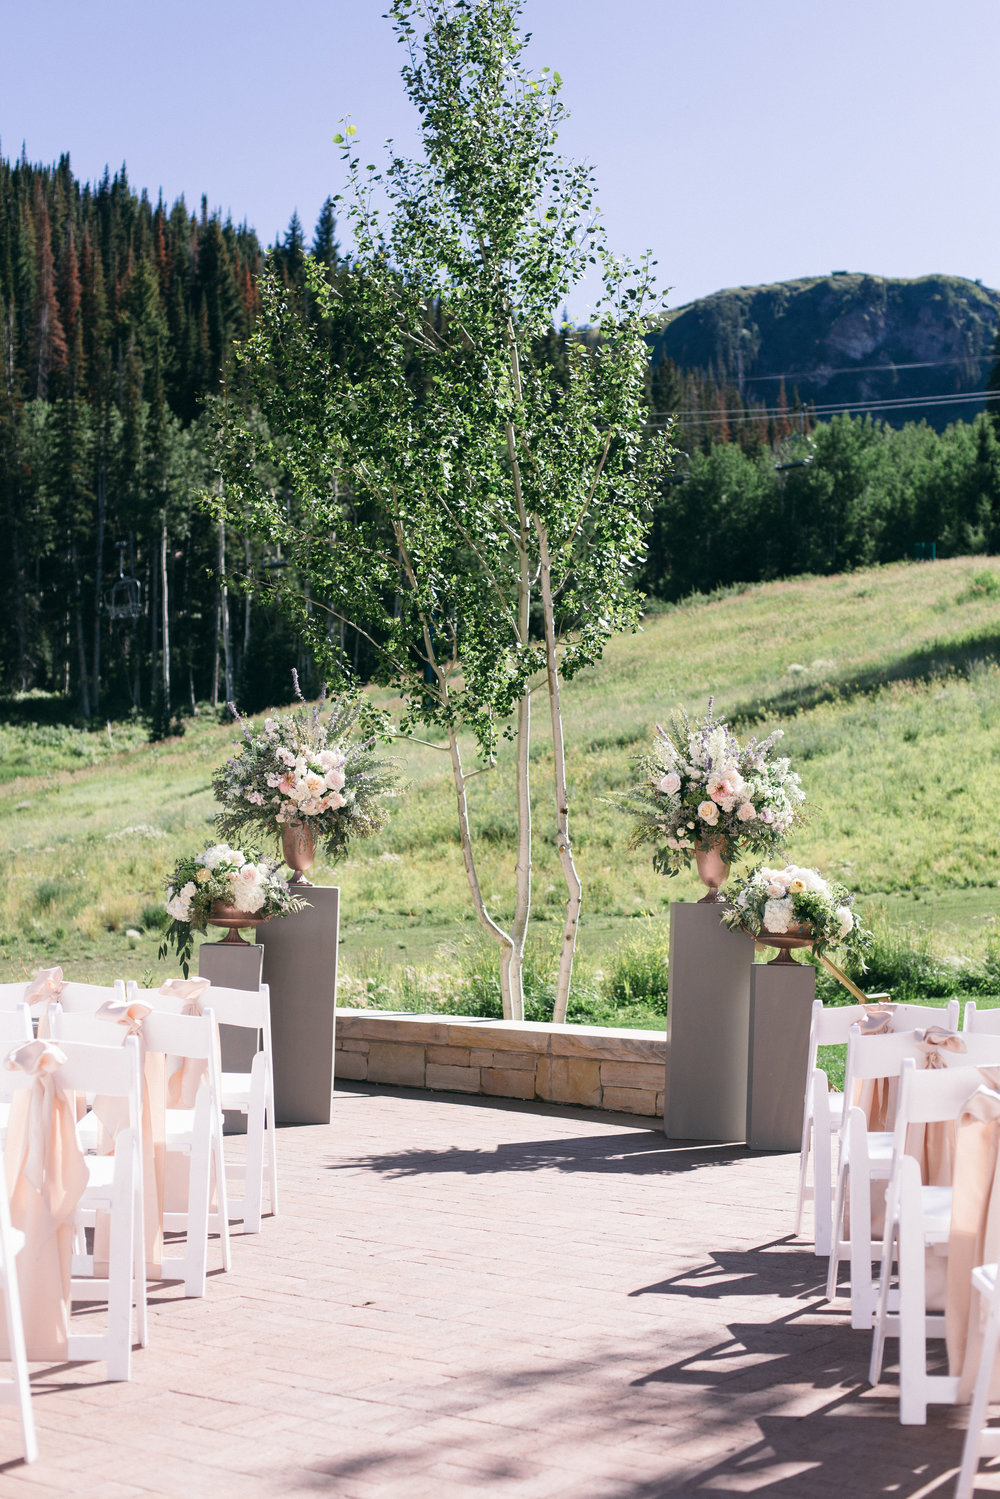 Montage Deer Valley Wedding | Romantic Summer Wedding | Michelle Leo Events | Utah Event Planner and Designer | Shannon Elizabeth Photography